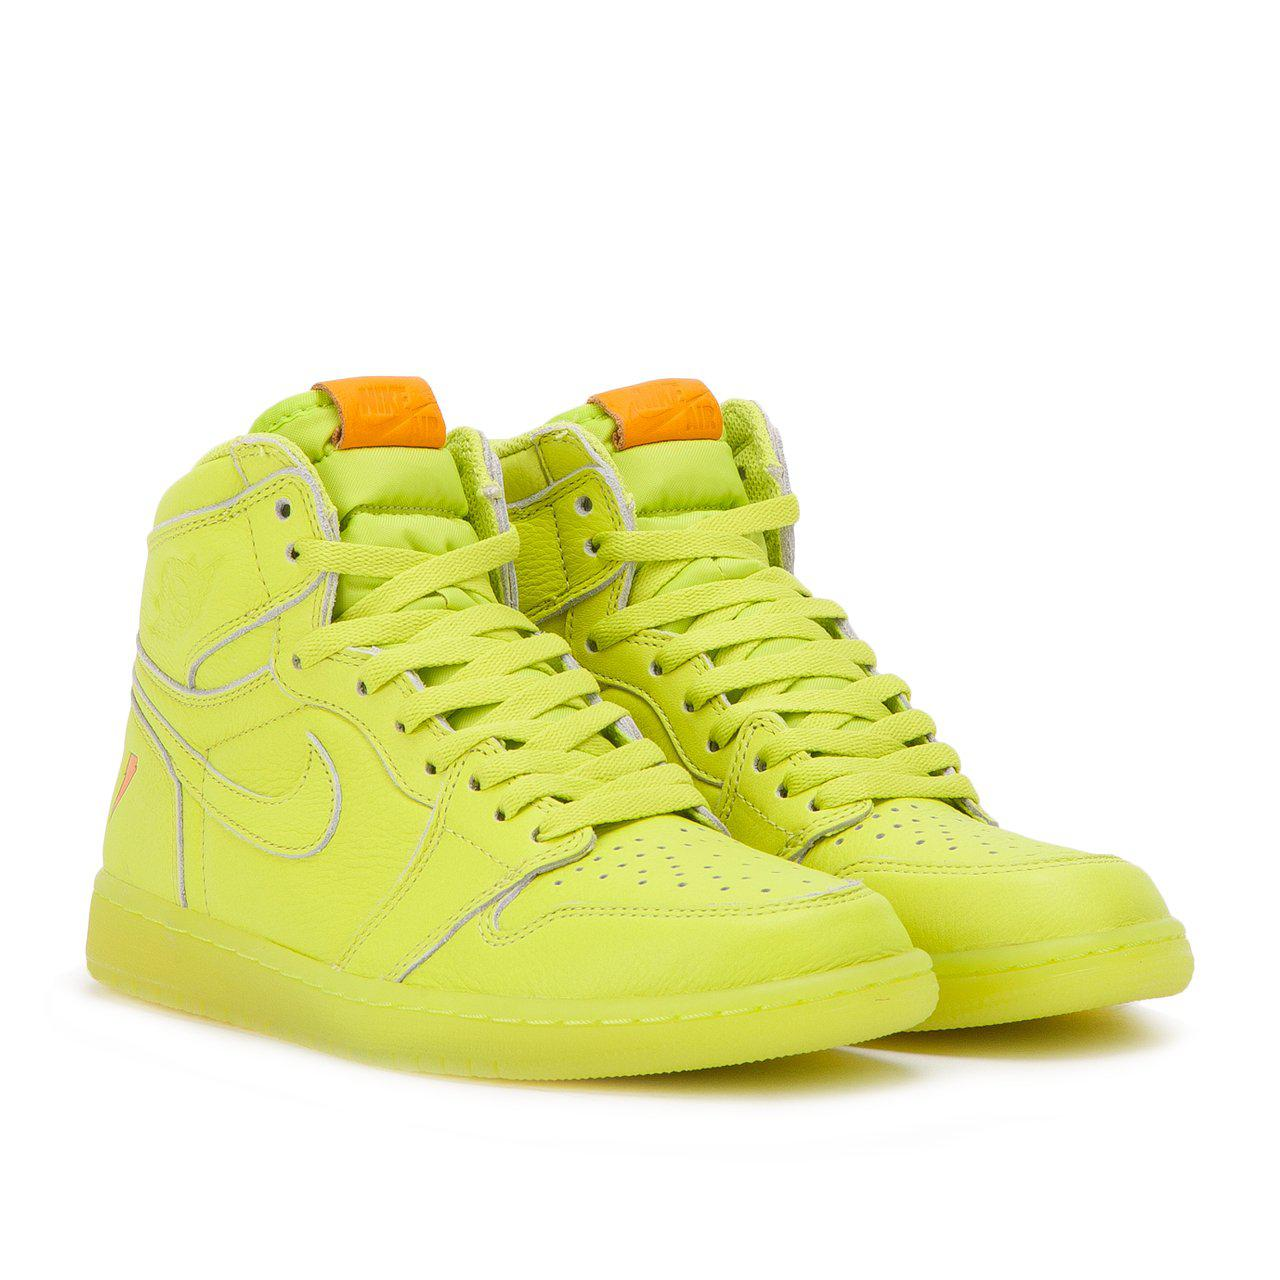 2b3270b02 Nike Air 1 Retro Hi G8rd in Yellow for Men - Lyst